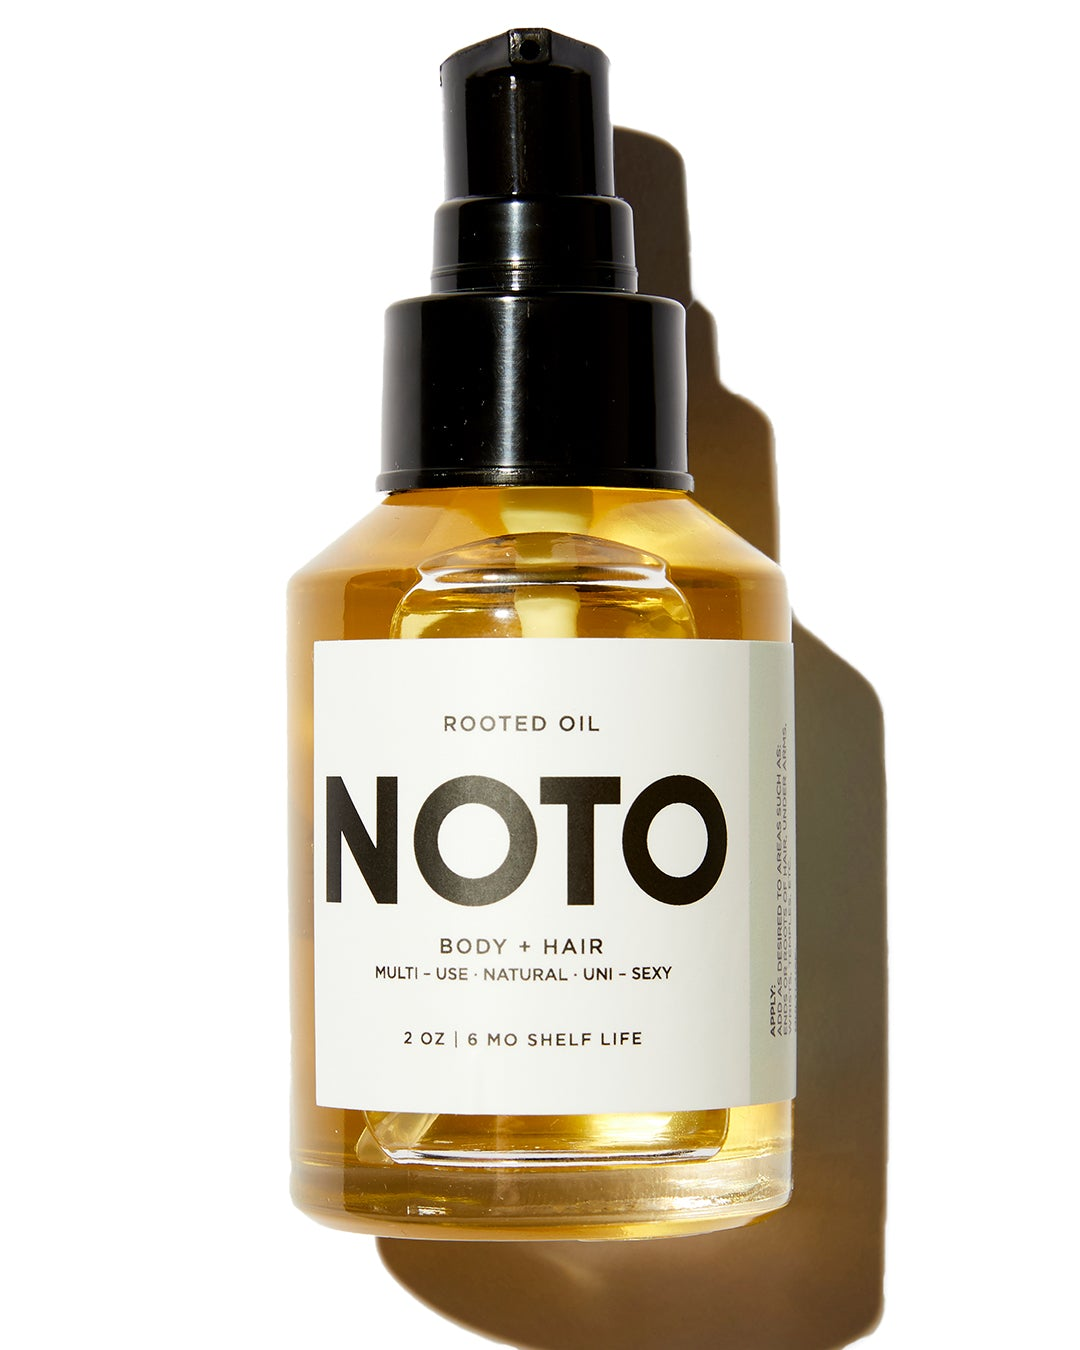 NOTO Rooted oil in clear oil dropper bottle with white label and black lid on white background